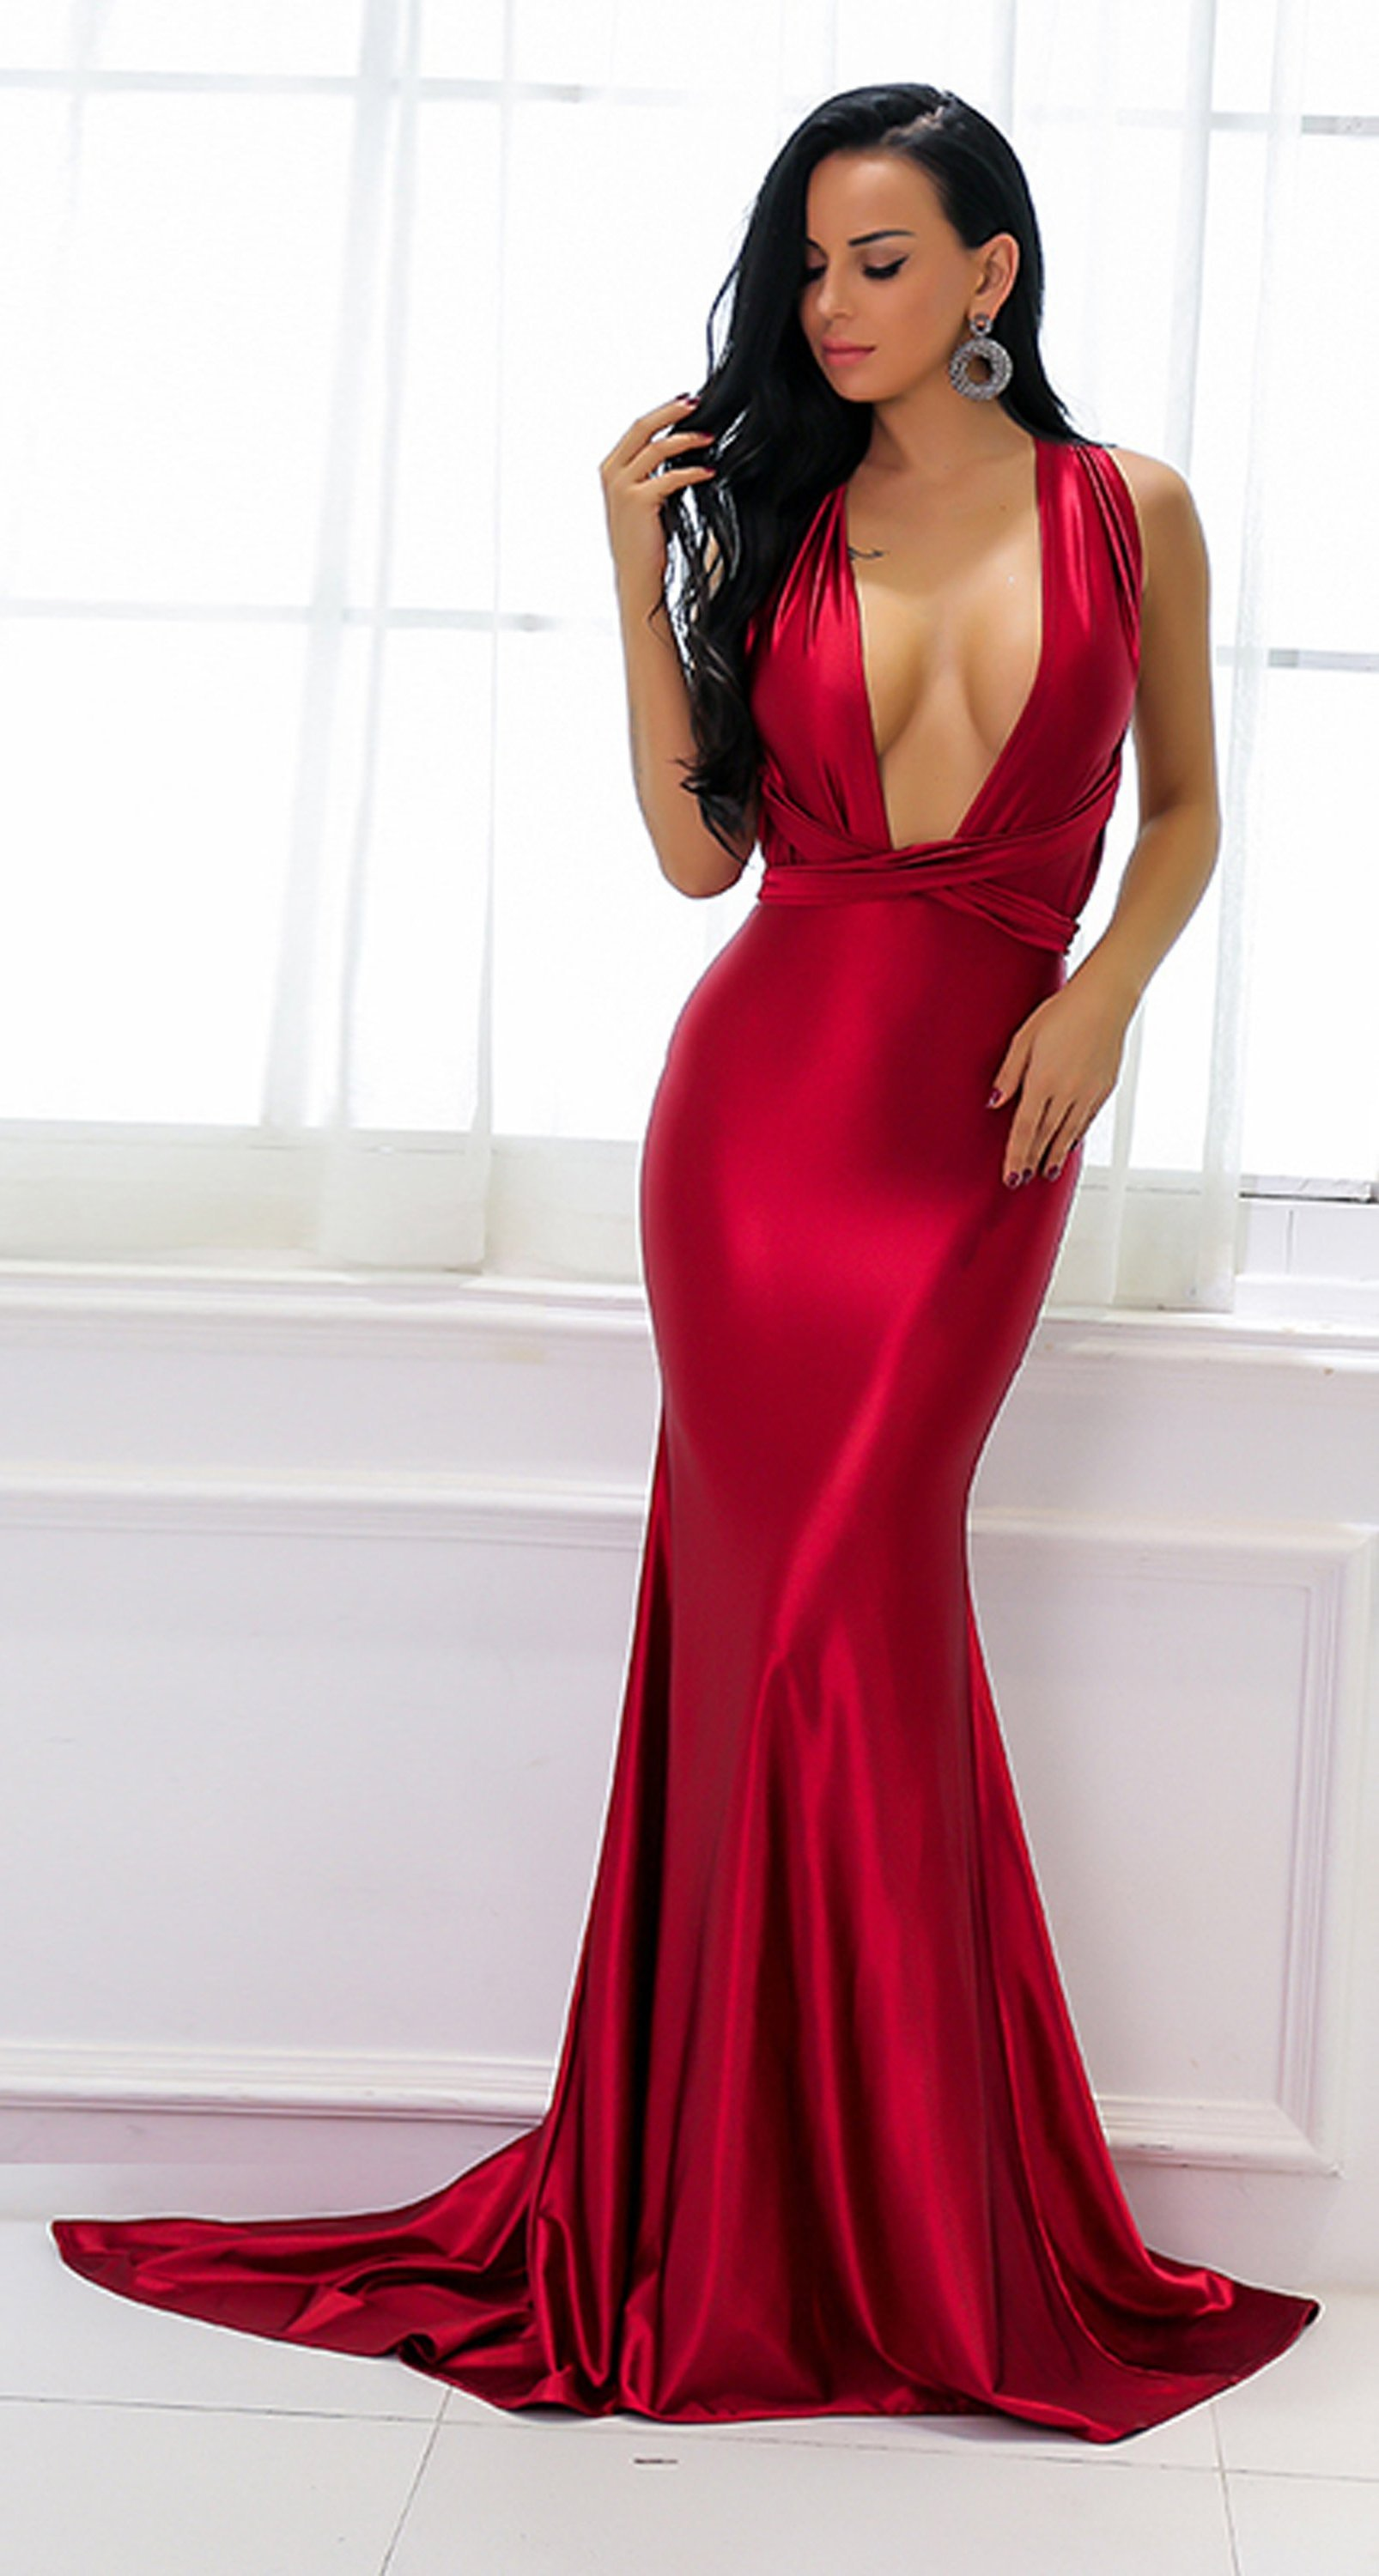 32e9cd472d7 Beautiful Red Silk Prom Dresses - Gorgeous Sparkly Satin Graduation  Homecoming Deep V Neck Plunge Backless Mermaid Gown Floor Length Dress -  Hermosos ...